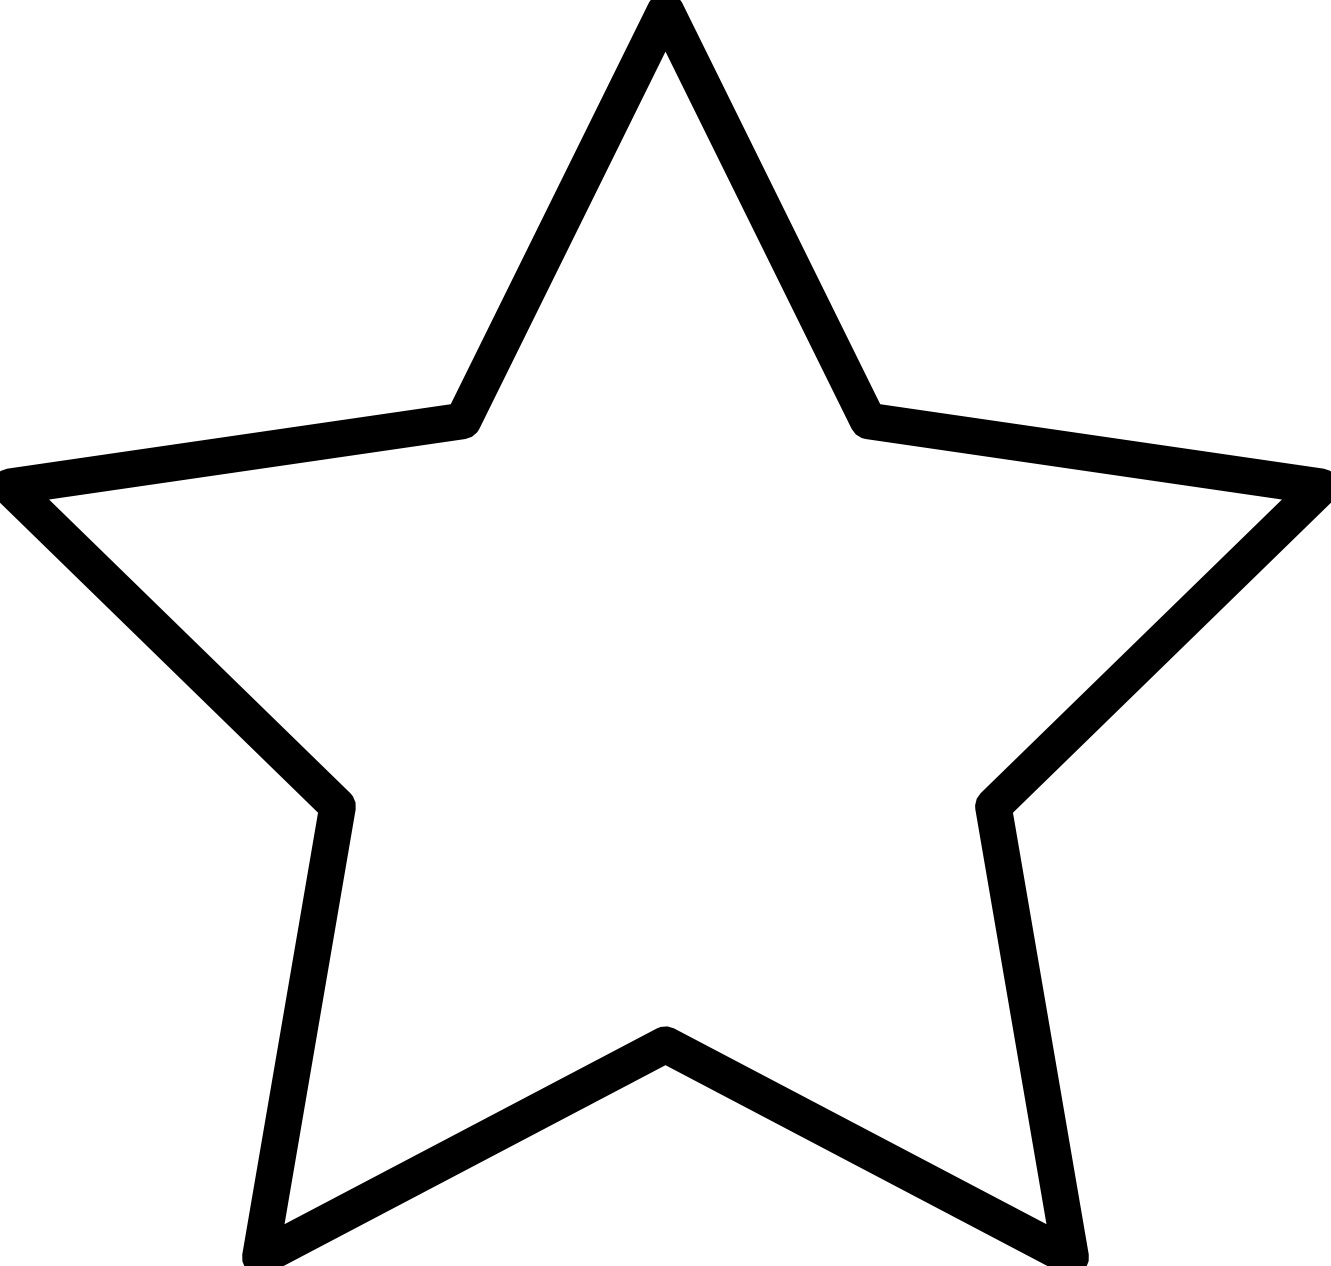 colouring pages stars 6 star coloring pages free premium templates pages colouring stars